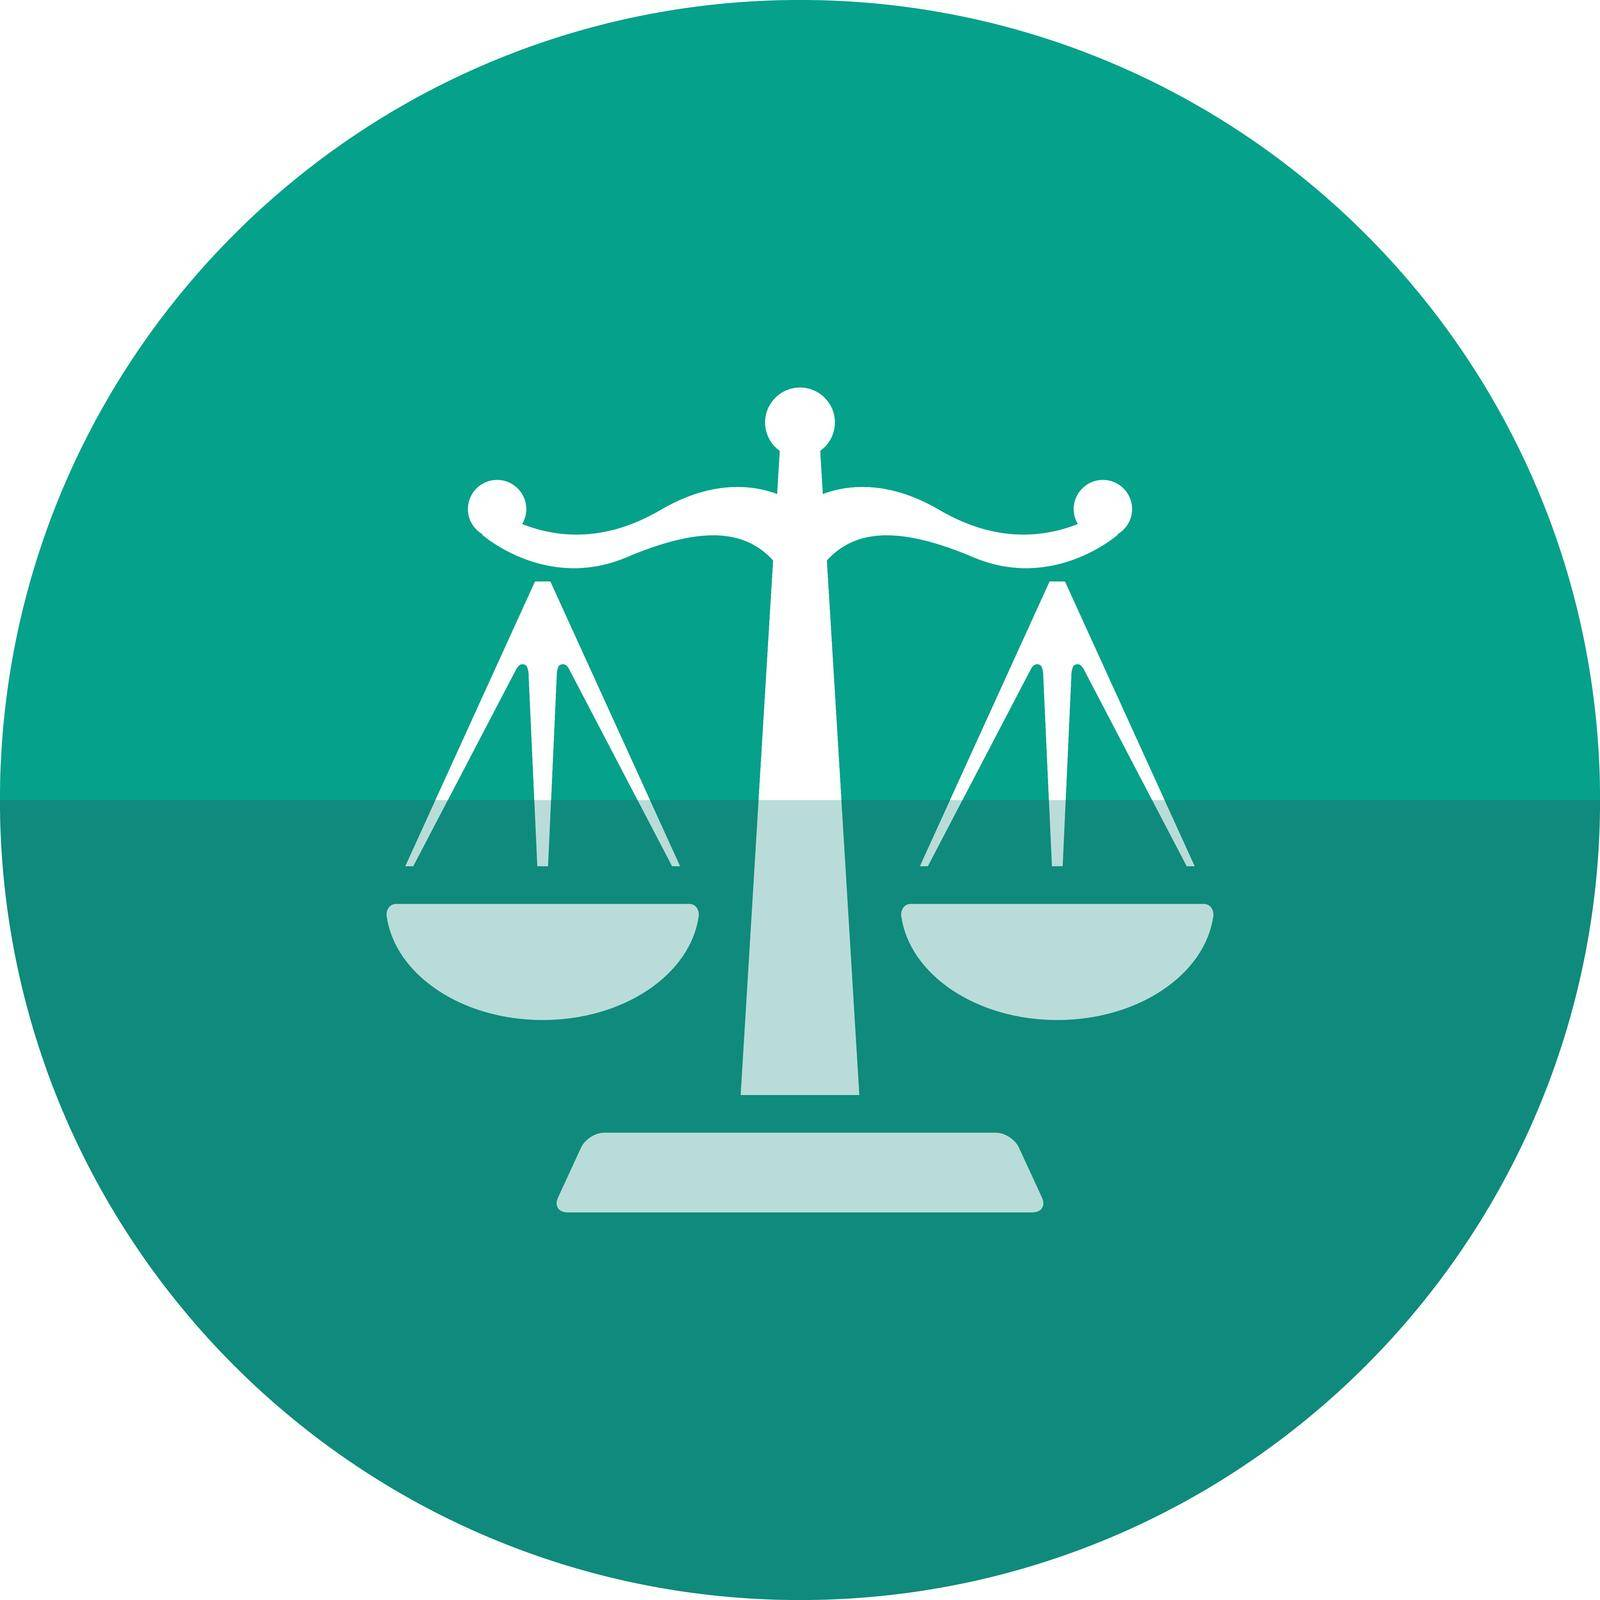 Justice scale icon in flat color circle style. Law litigation measurement balance